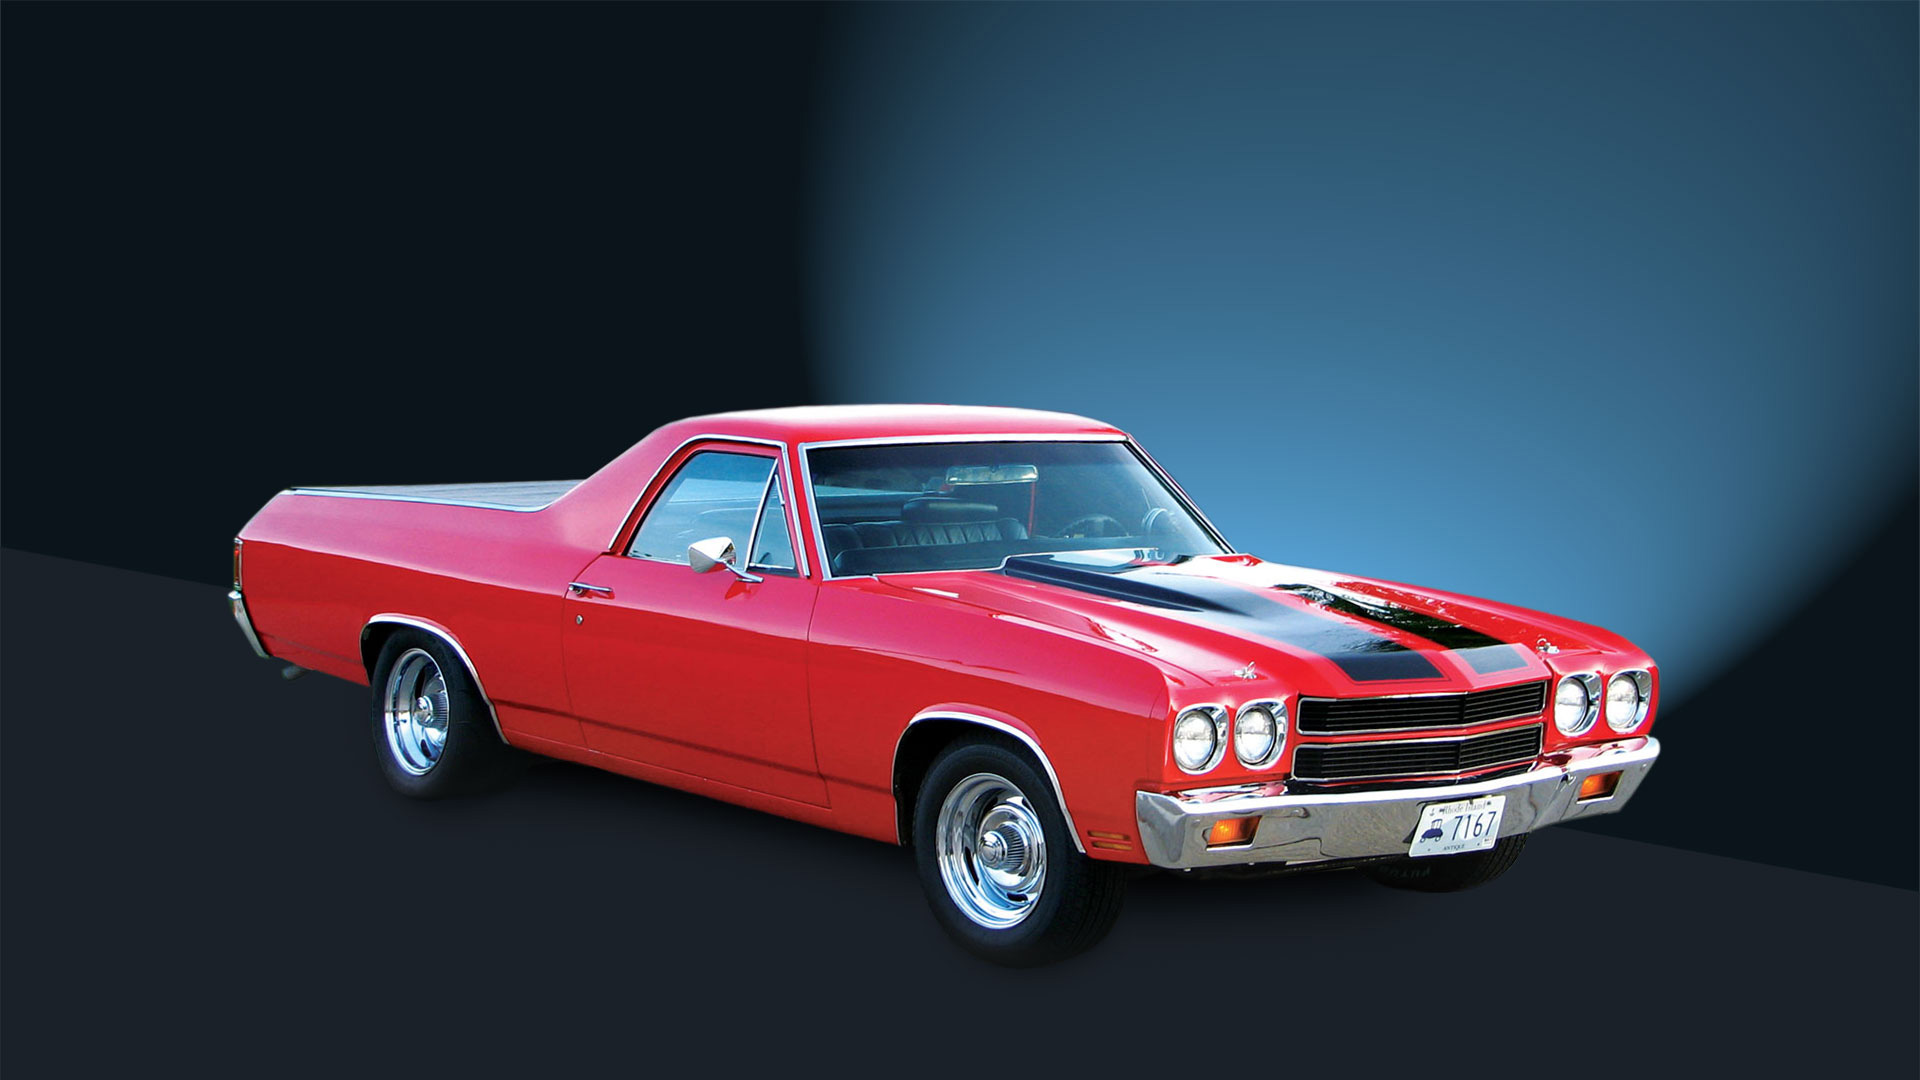 Chevy Muscle Car Wallpaper 5477 Hd Wallpapers in Cars   Imagescicom 1920x1080